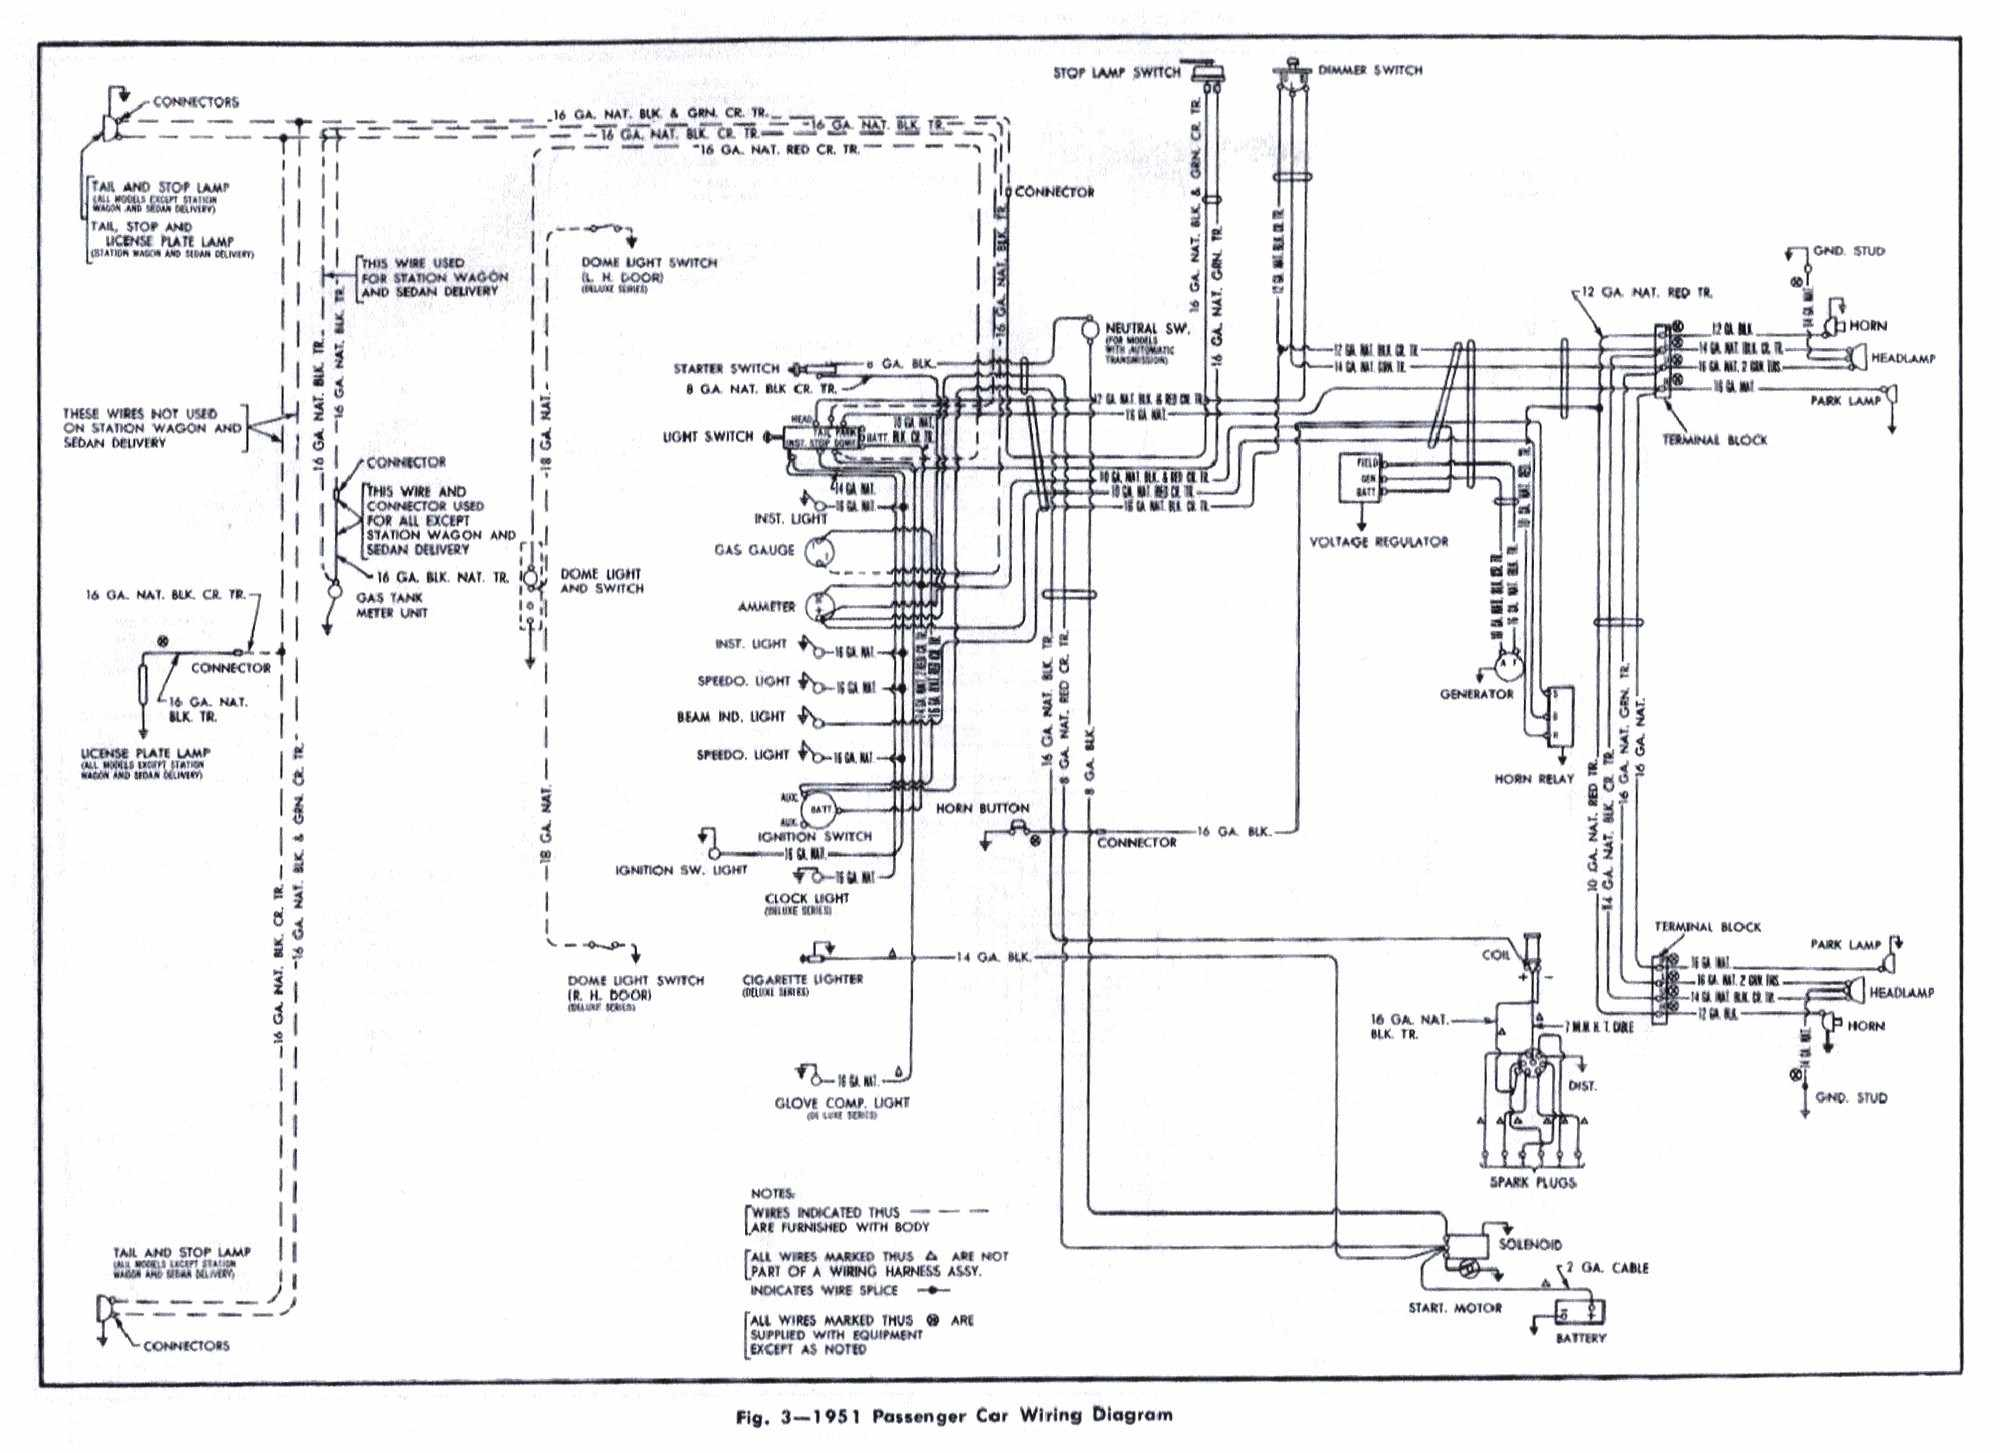 51 oldsmobile wiring diagram wiring diagram operations 1951 desoto wiring diagram [ 2000 x 1453 Pixel ]